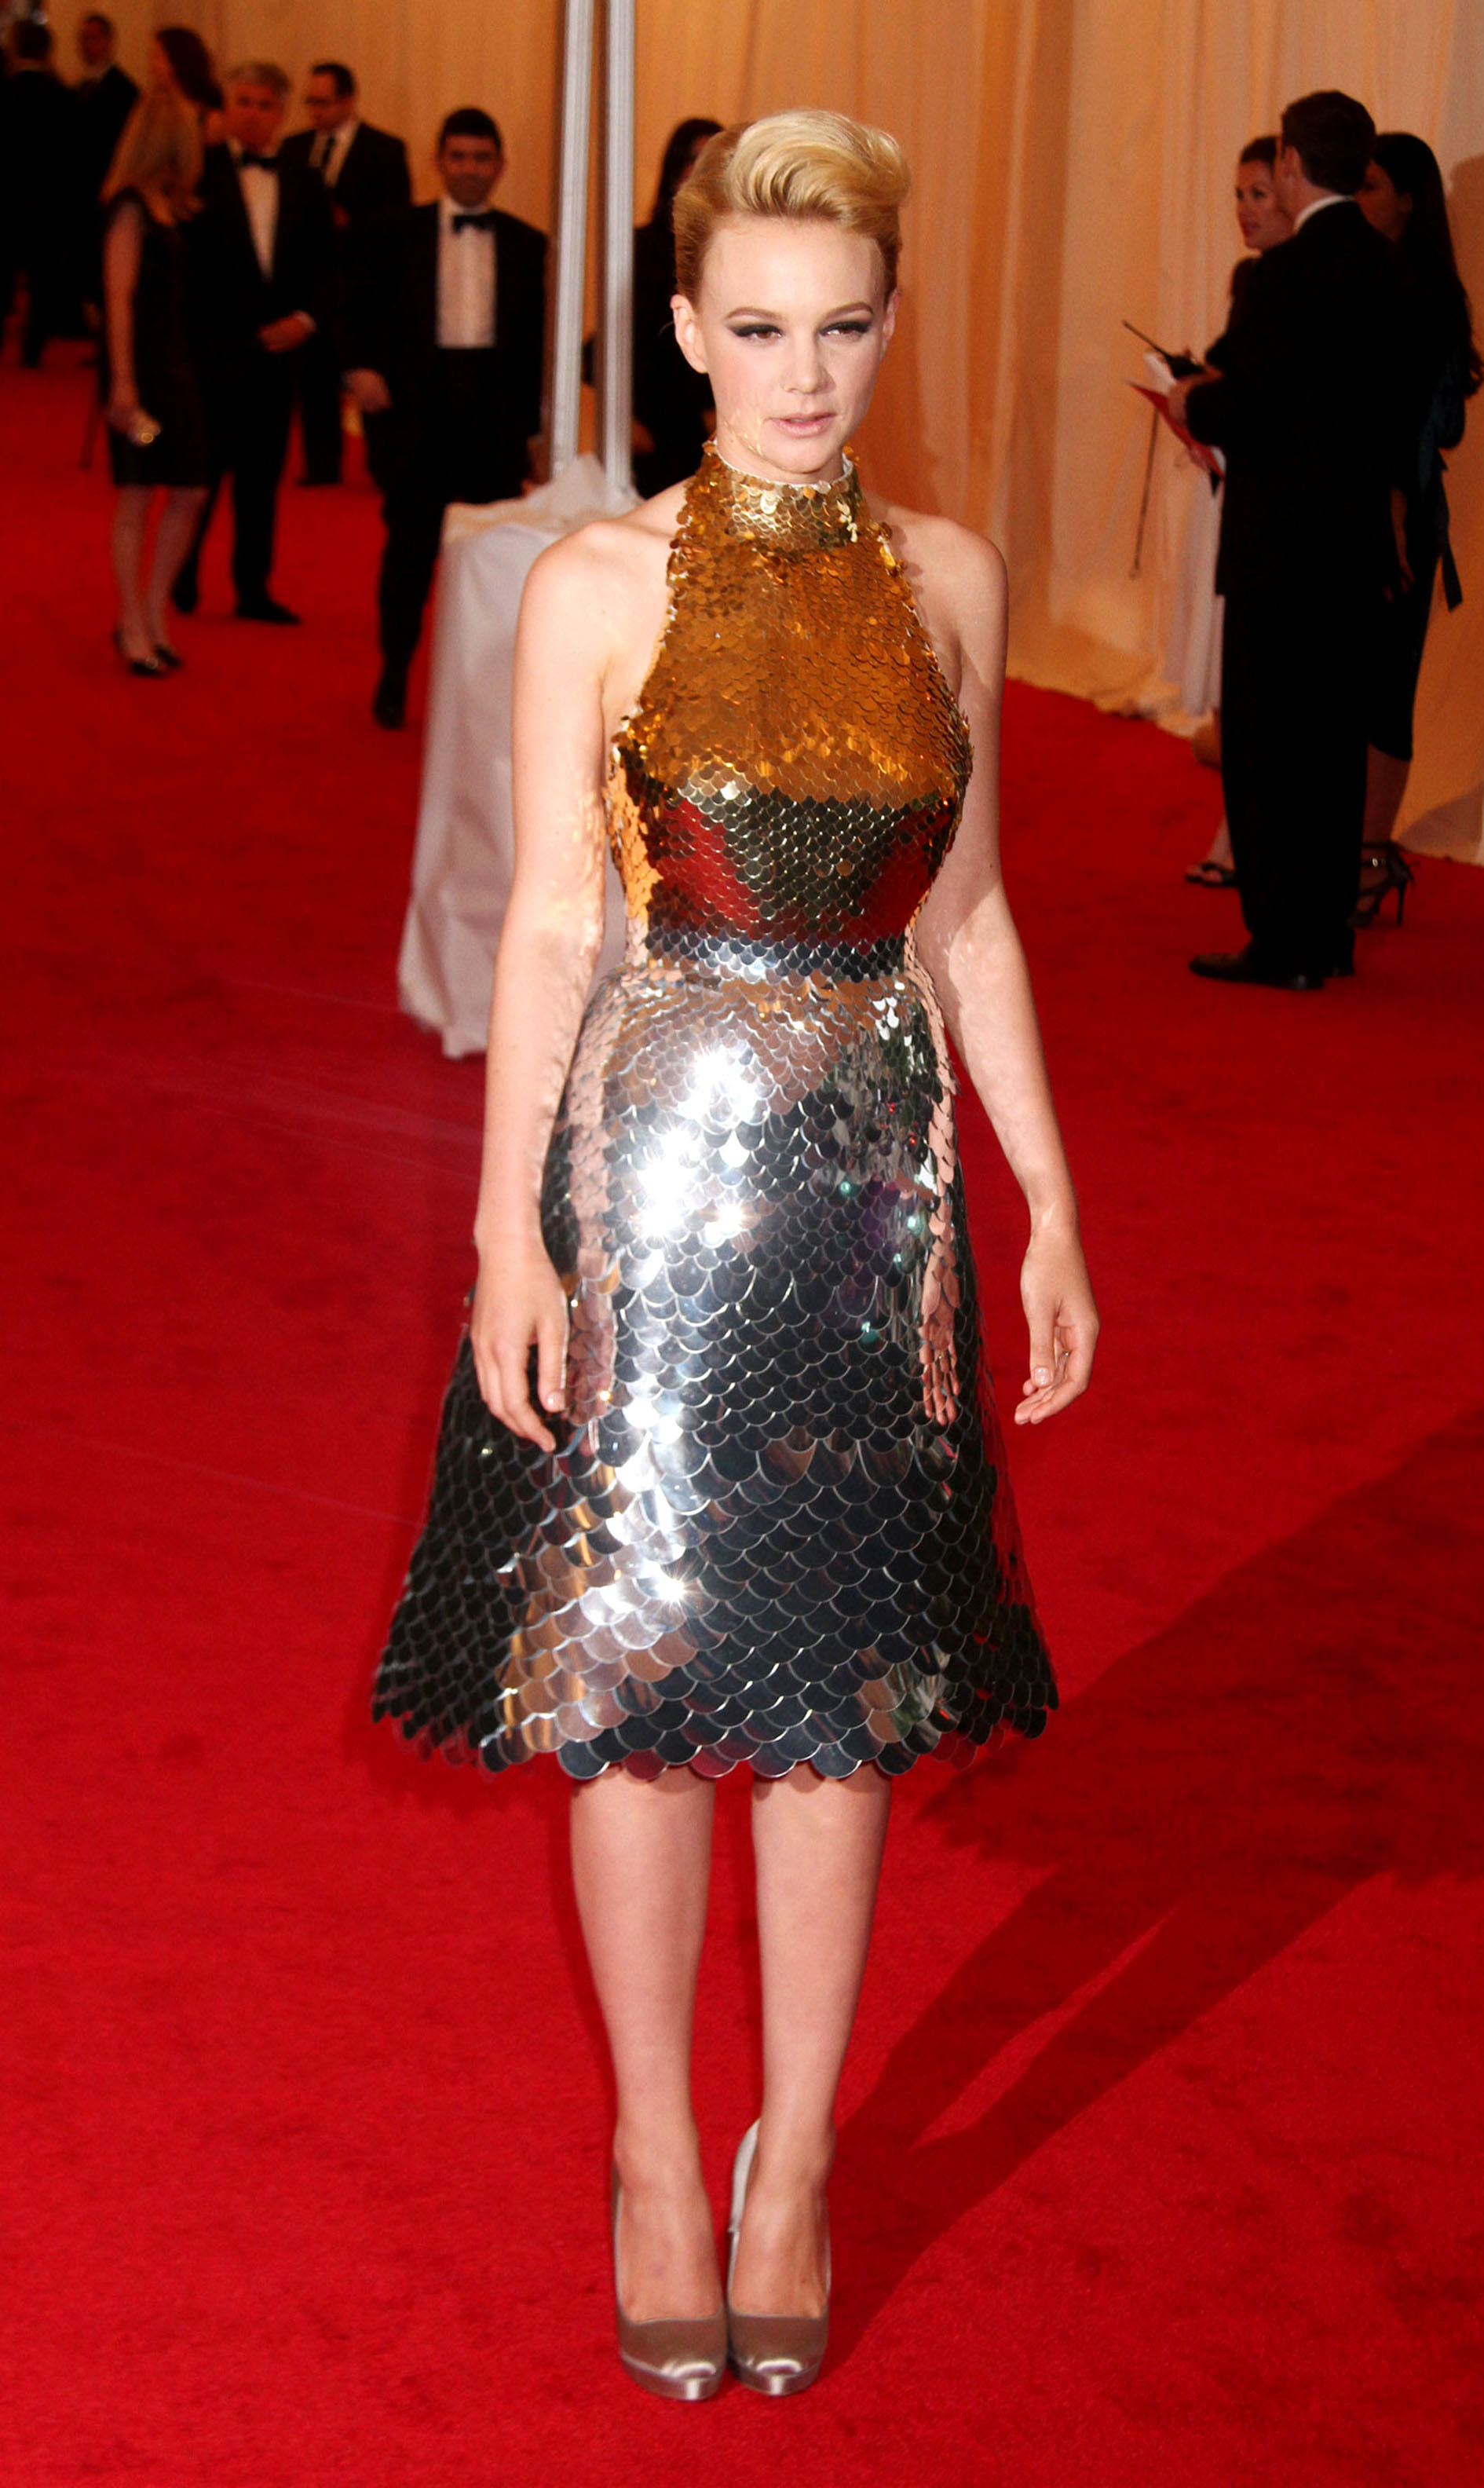 Met Gala 2012 Best Dressed Celebrities